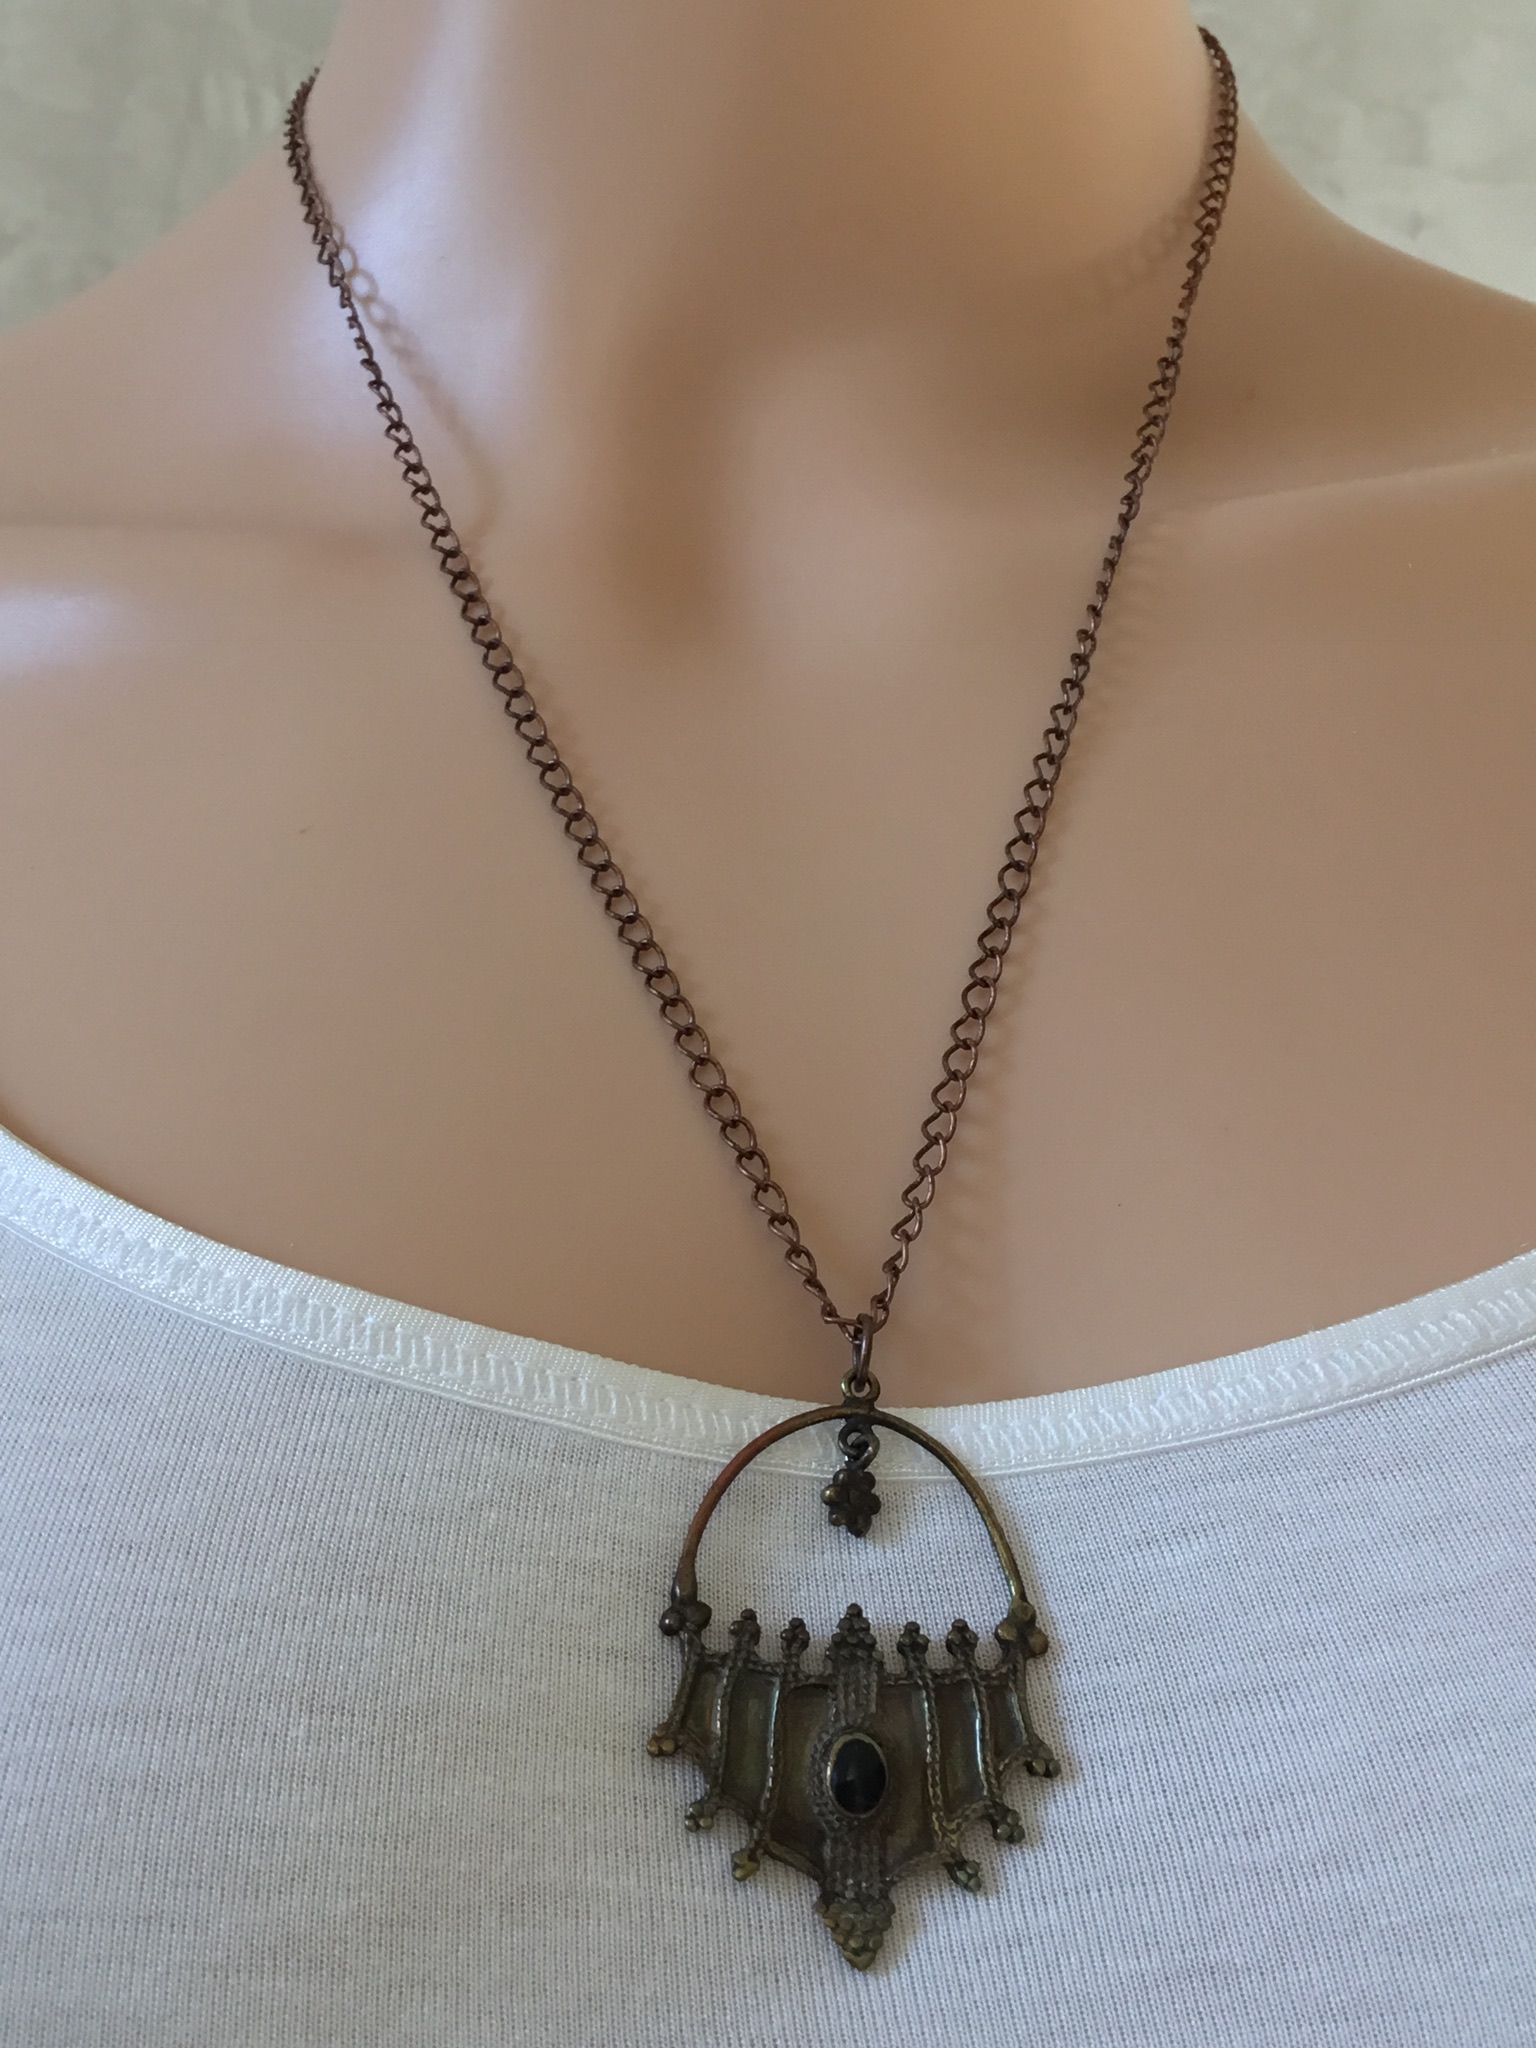 Bronze-Colored Pendant with Stone Necklace